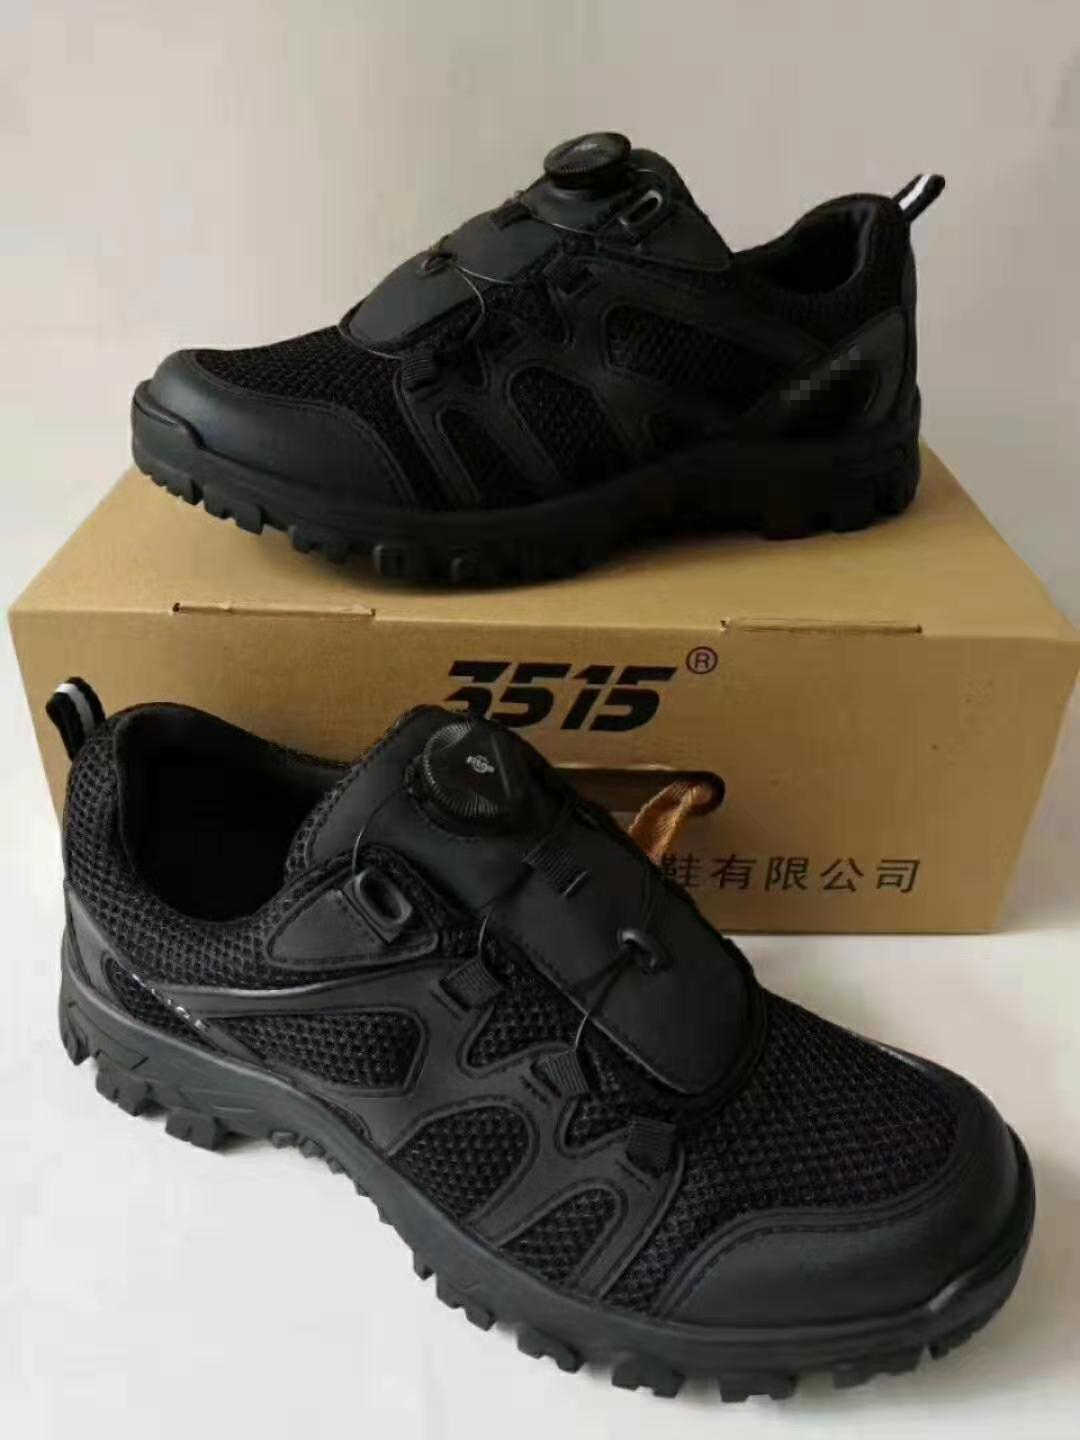 3515 authentic new training shoes outdoor ultra light automatic button sports running shoes breathable mens low top shoes military shoes